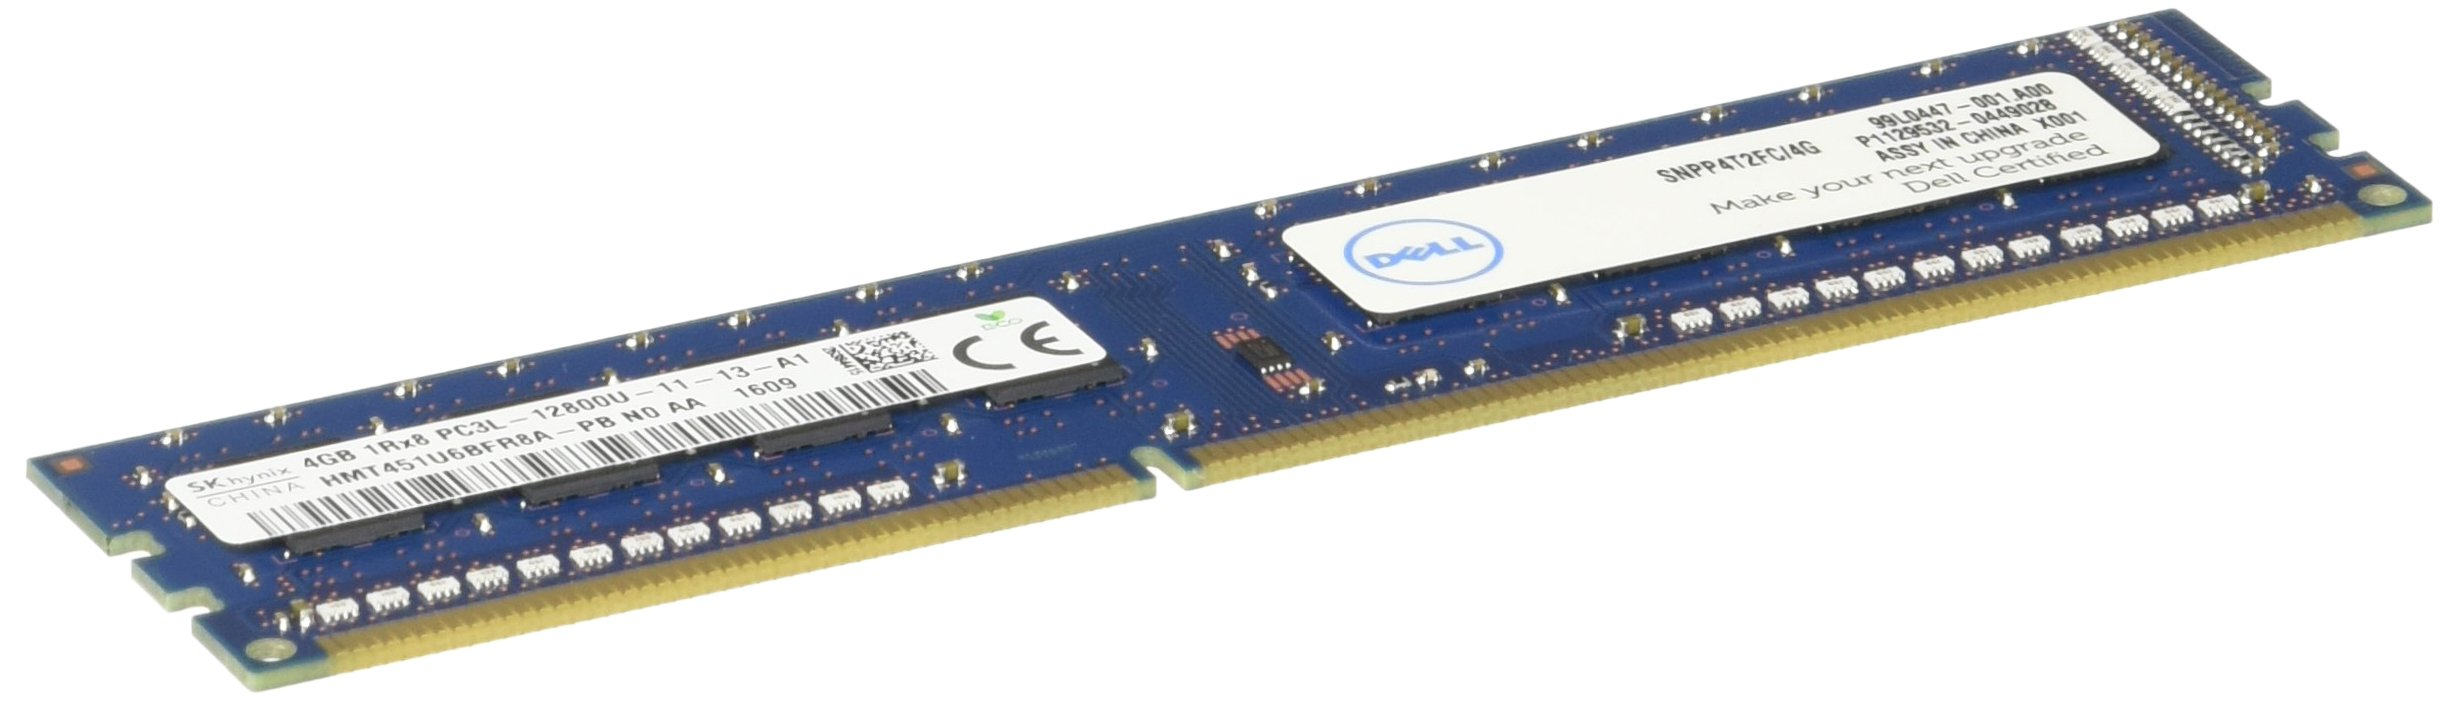 Dell 4GB DDR4 SDRAM Memory Module by Dell Technologies (Image #1)